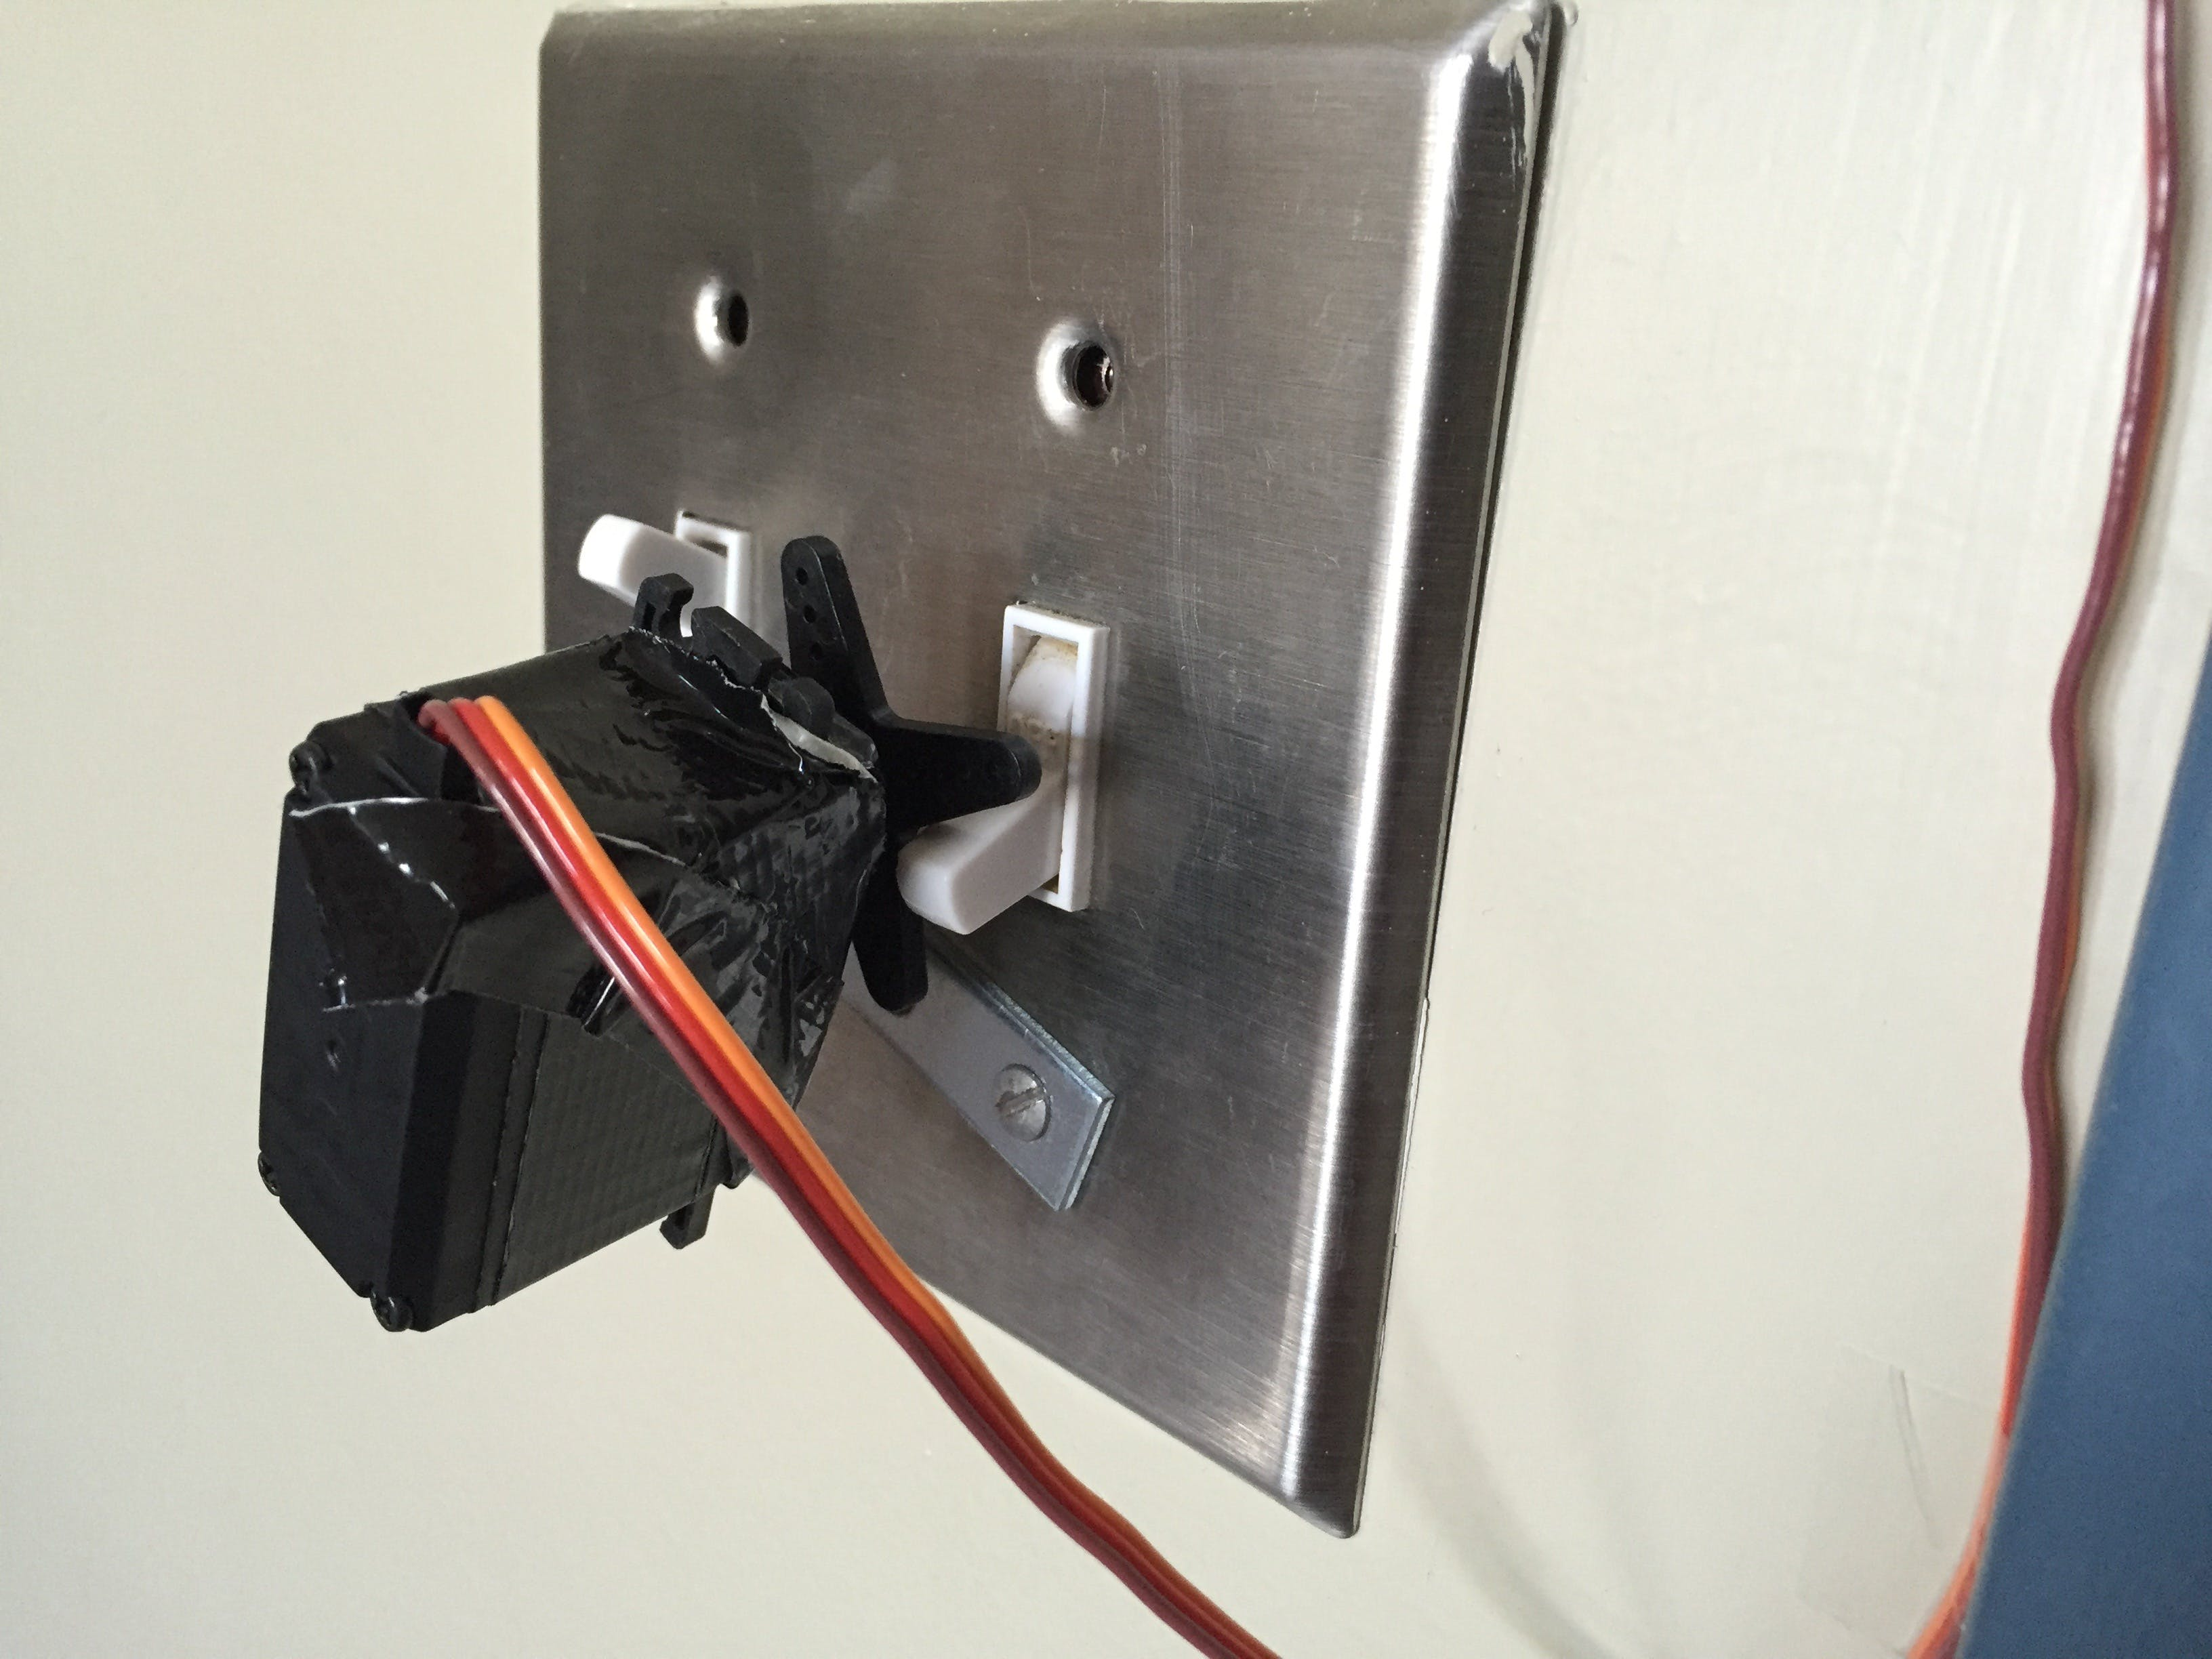 The overhead lights in the room are controlled with a simple servo motor attached to the light switch.